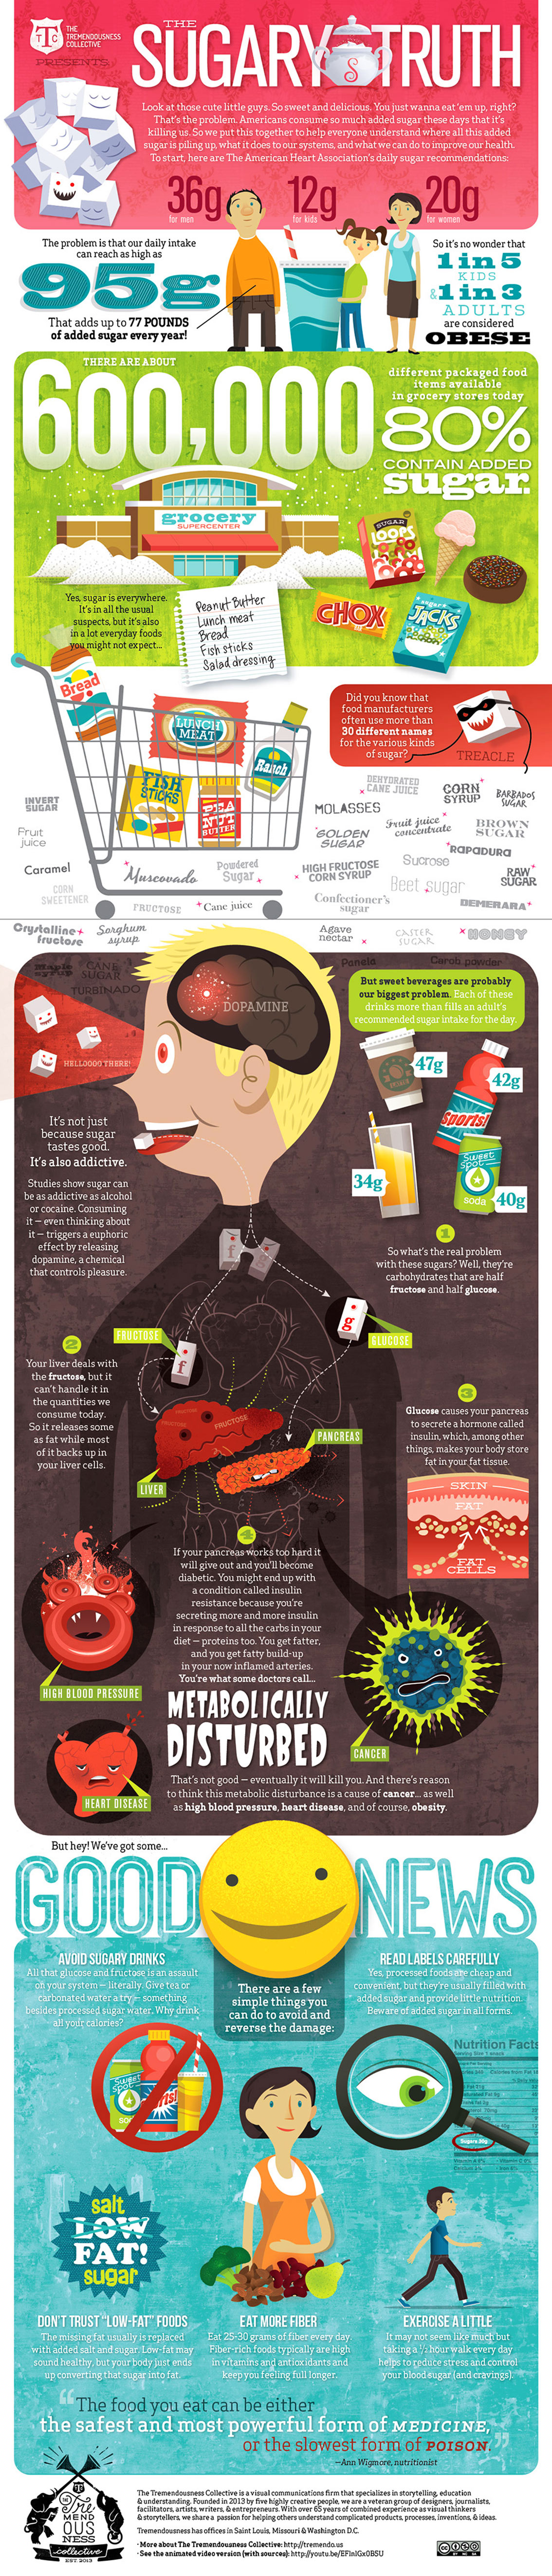 Effects of Too Much Sugar on the Body - Health infographic